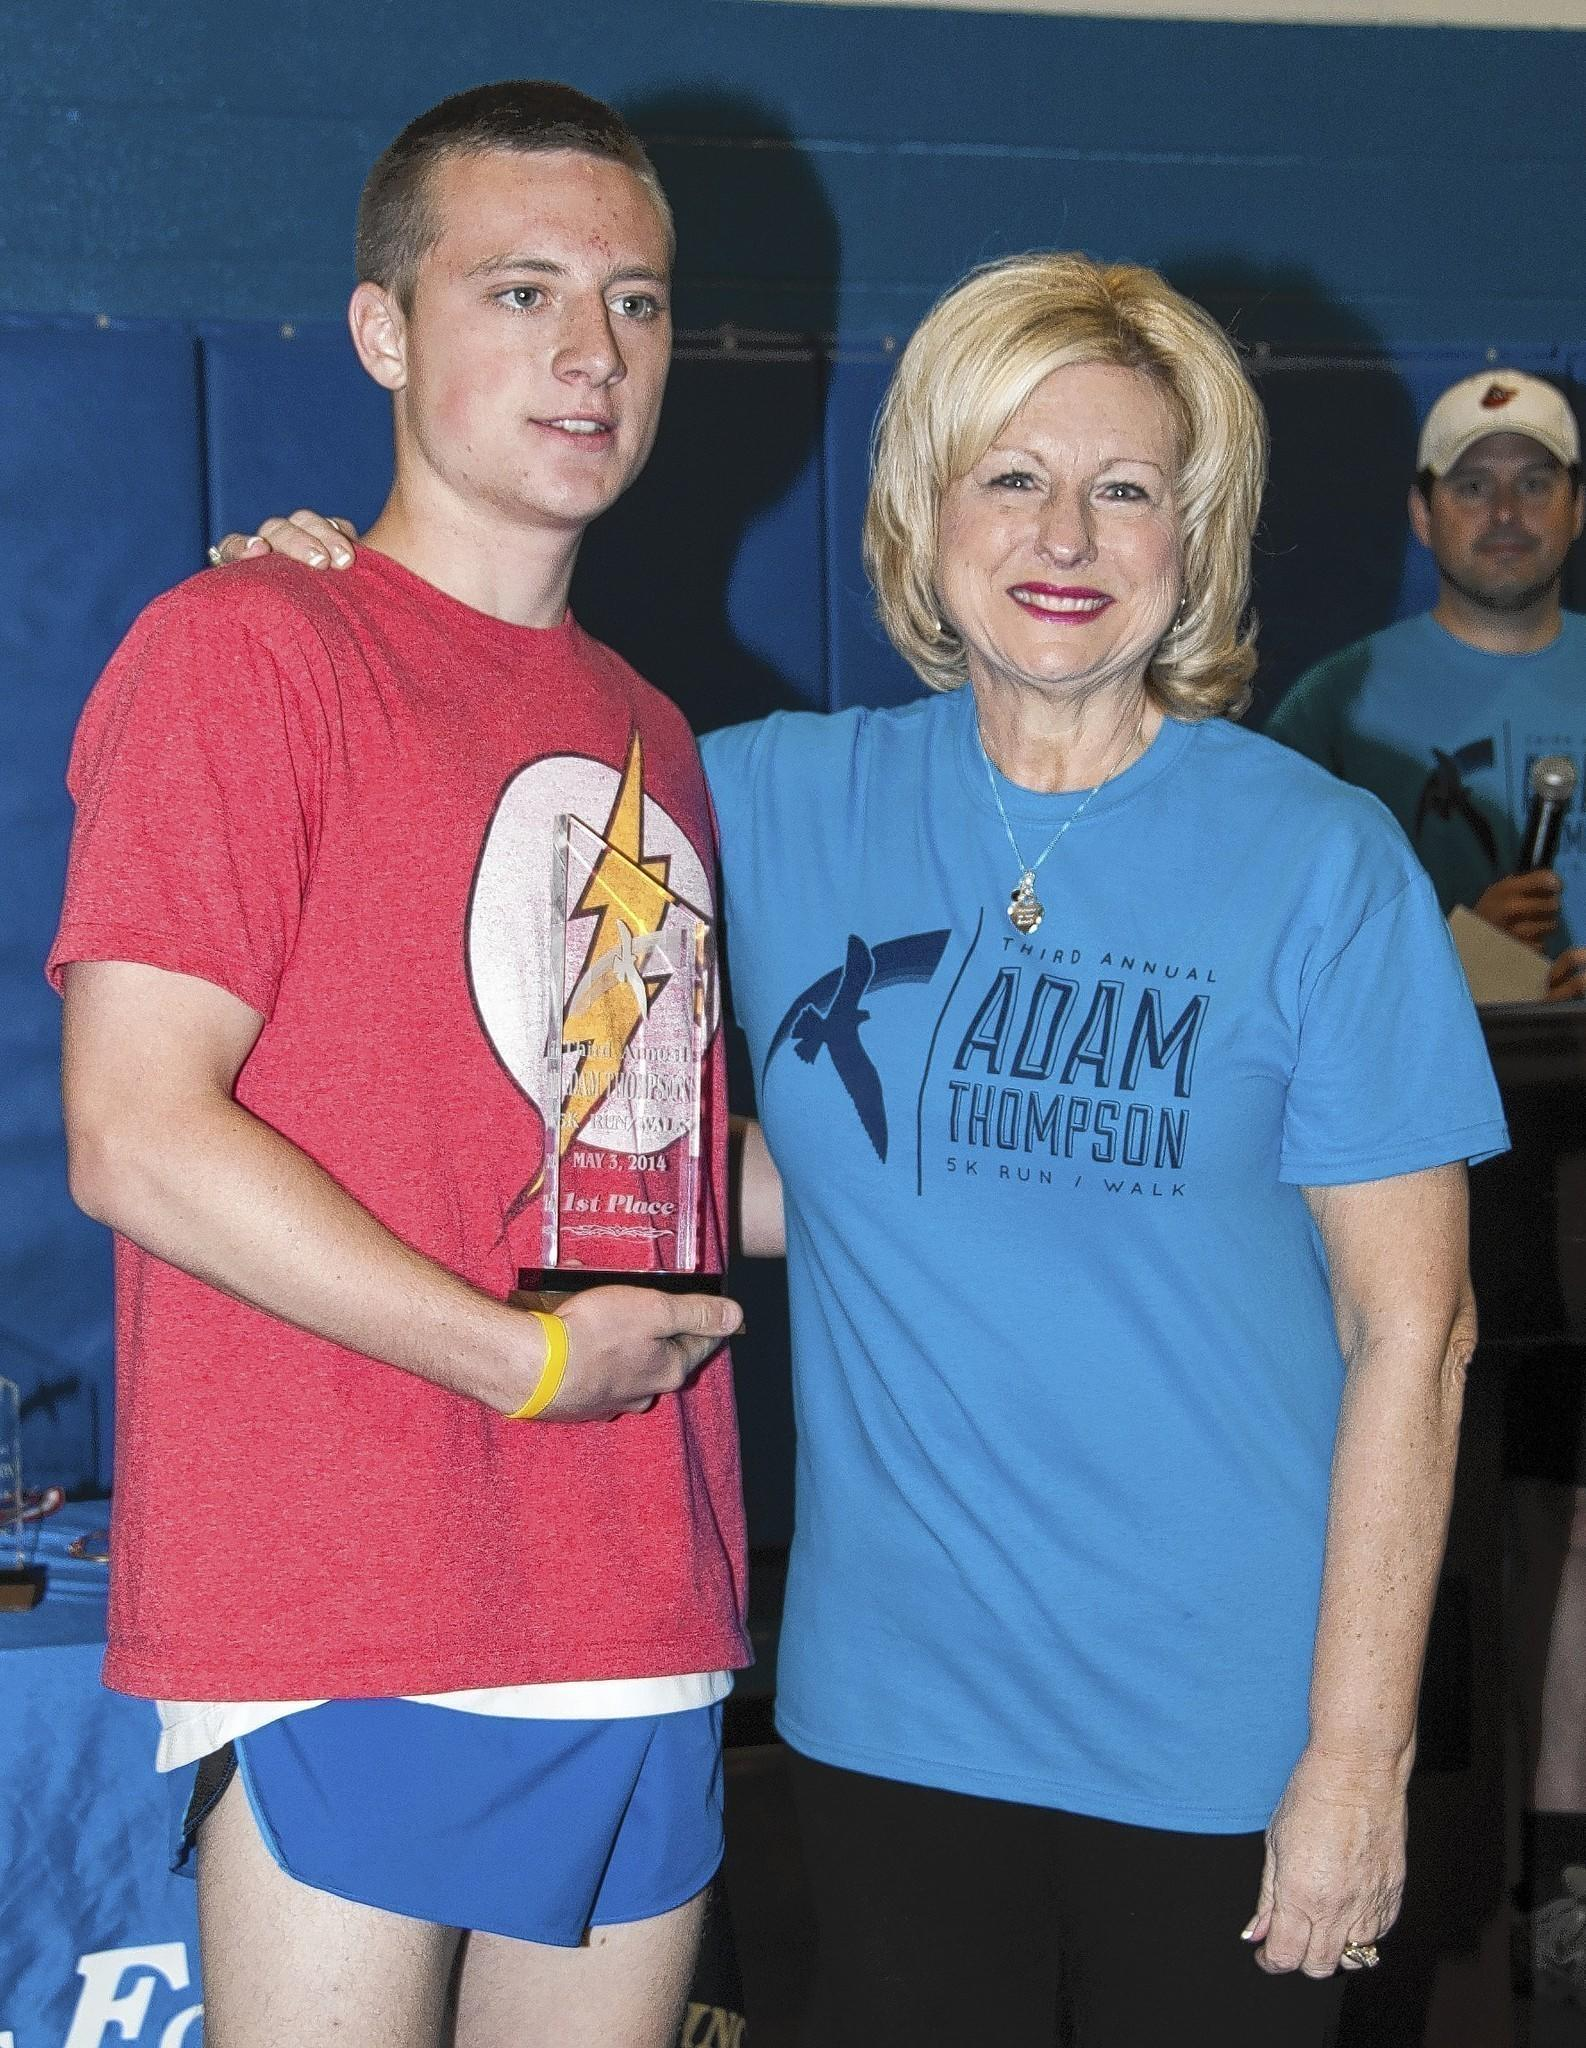 Pat Thompson, right, mother of the late Adam Thompson, stands with Tyler Muse, who finished first in Saturday's third annual Adam Thompson 5K Run/Walk at Harford Community College. Muse completed the run in 16:44.5.